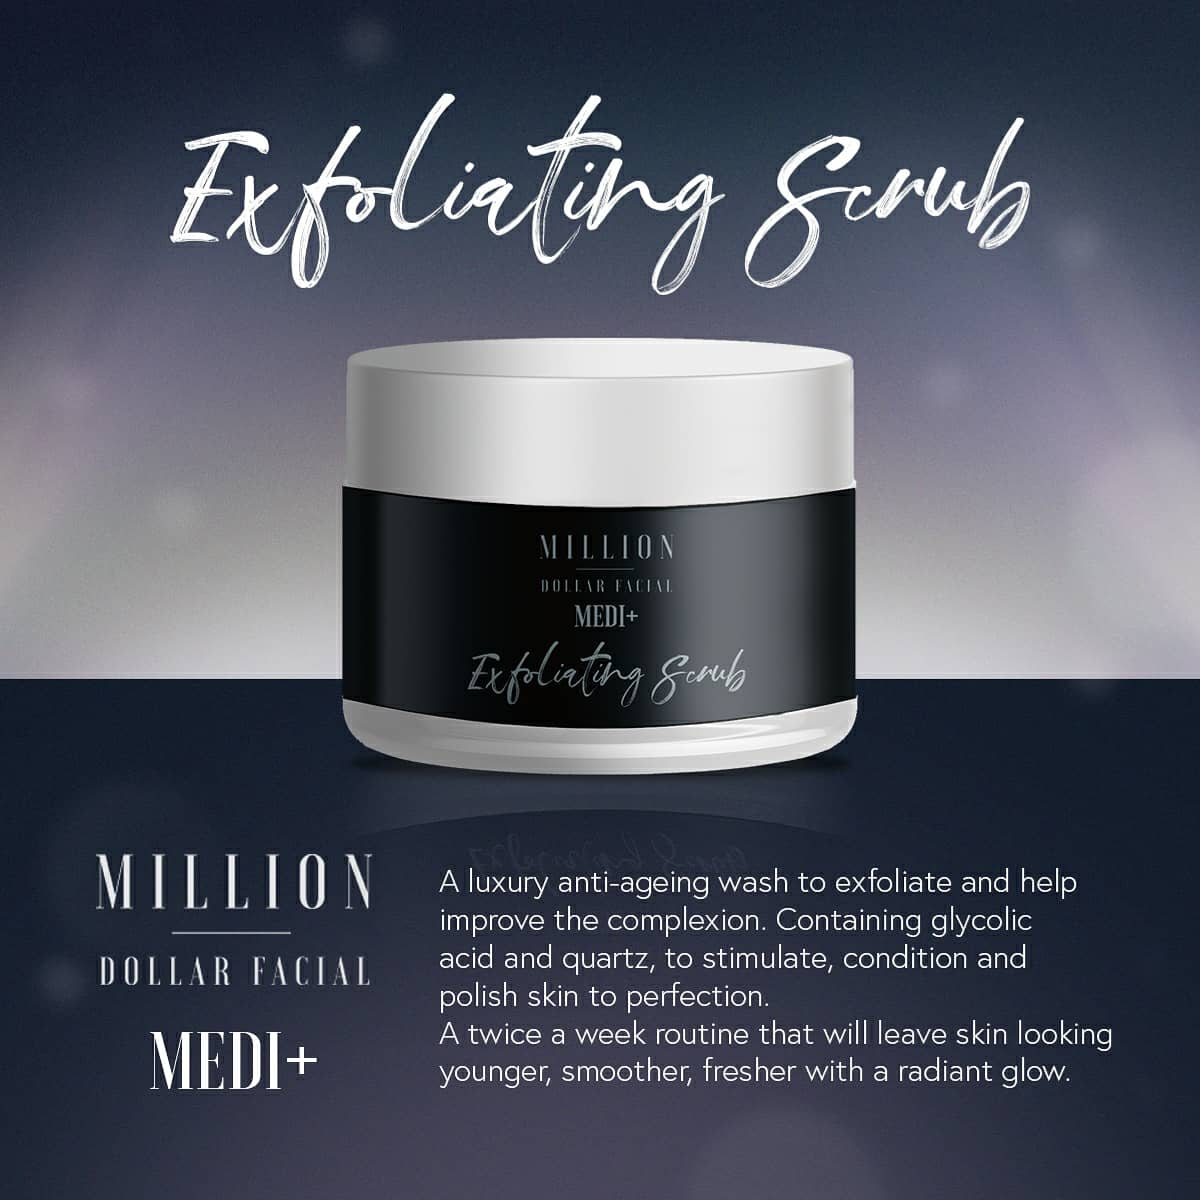 Exfoliating Scrub From Million Dollar Facial at Uber Pigmentations